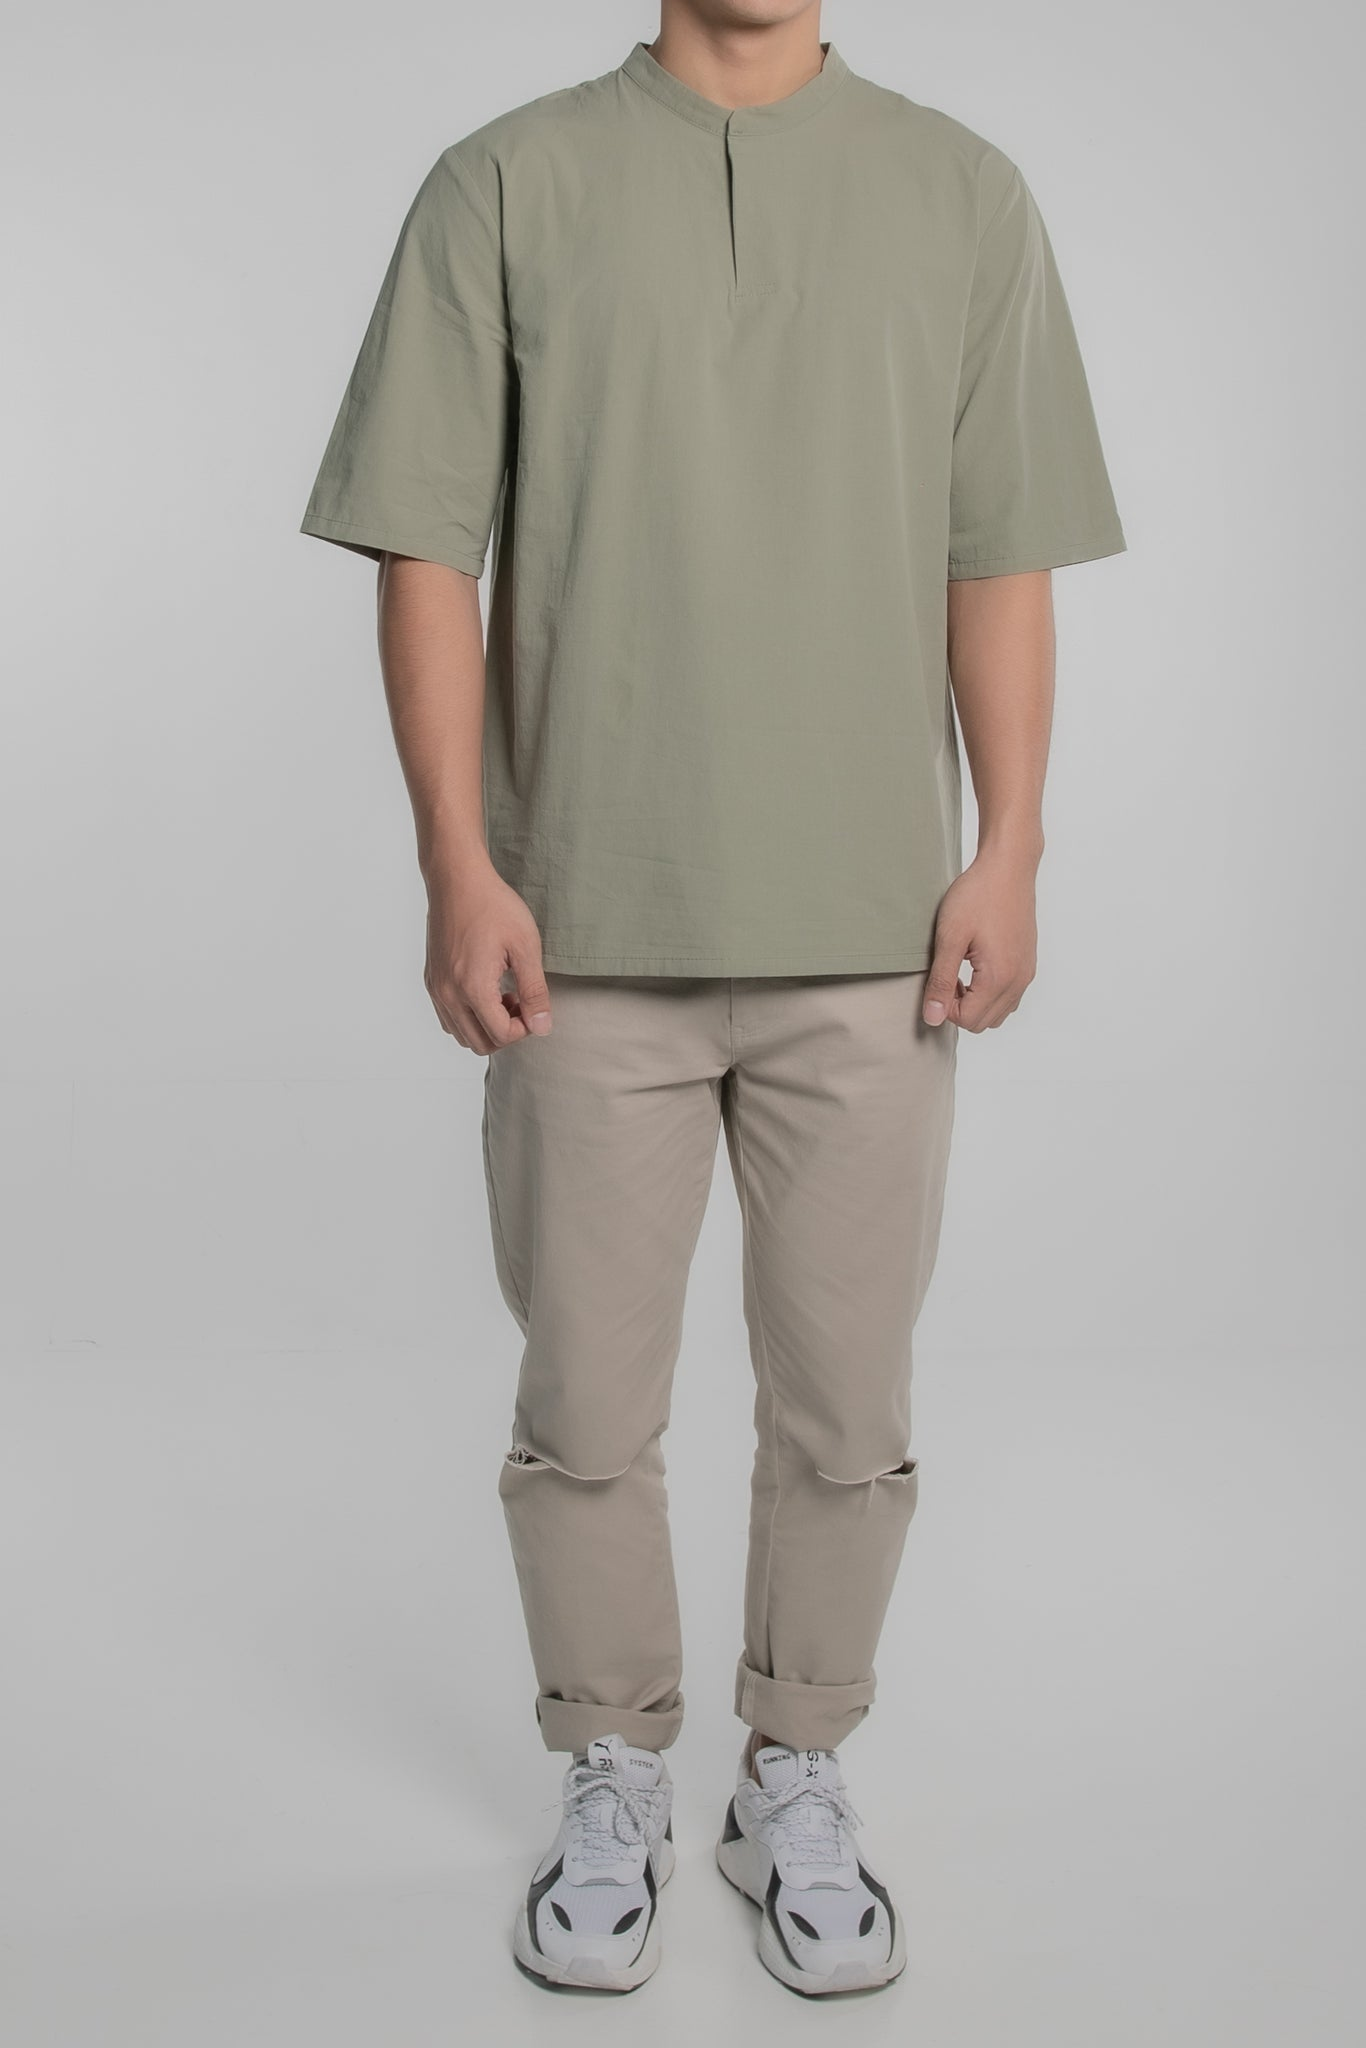 Mandarin Collar Short Sleeve Shirt (Green)